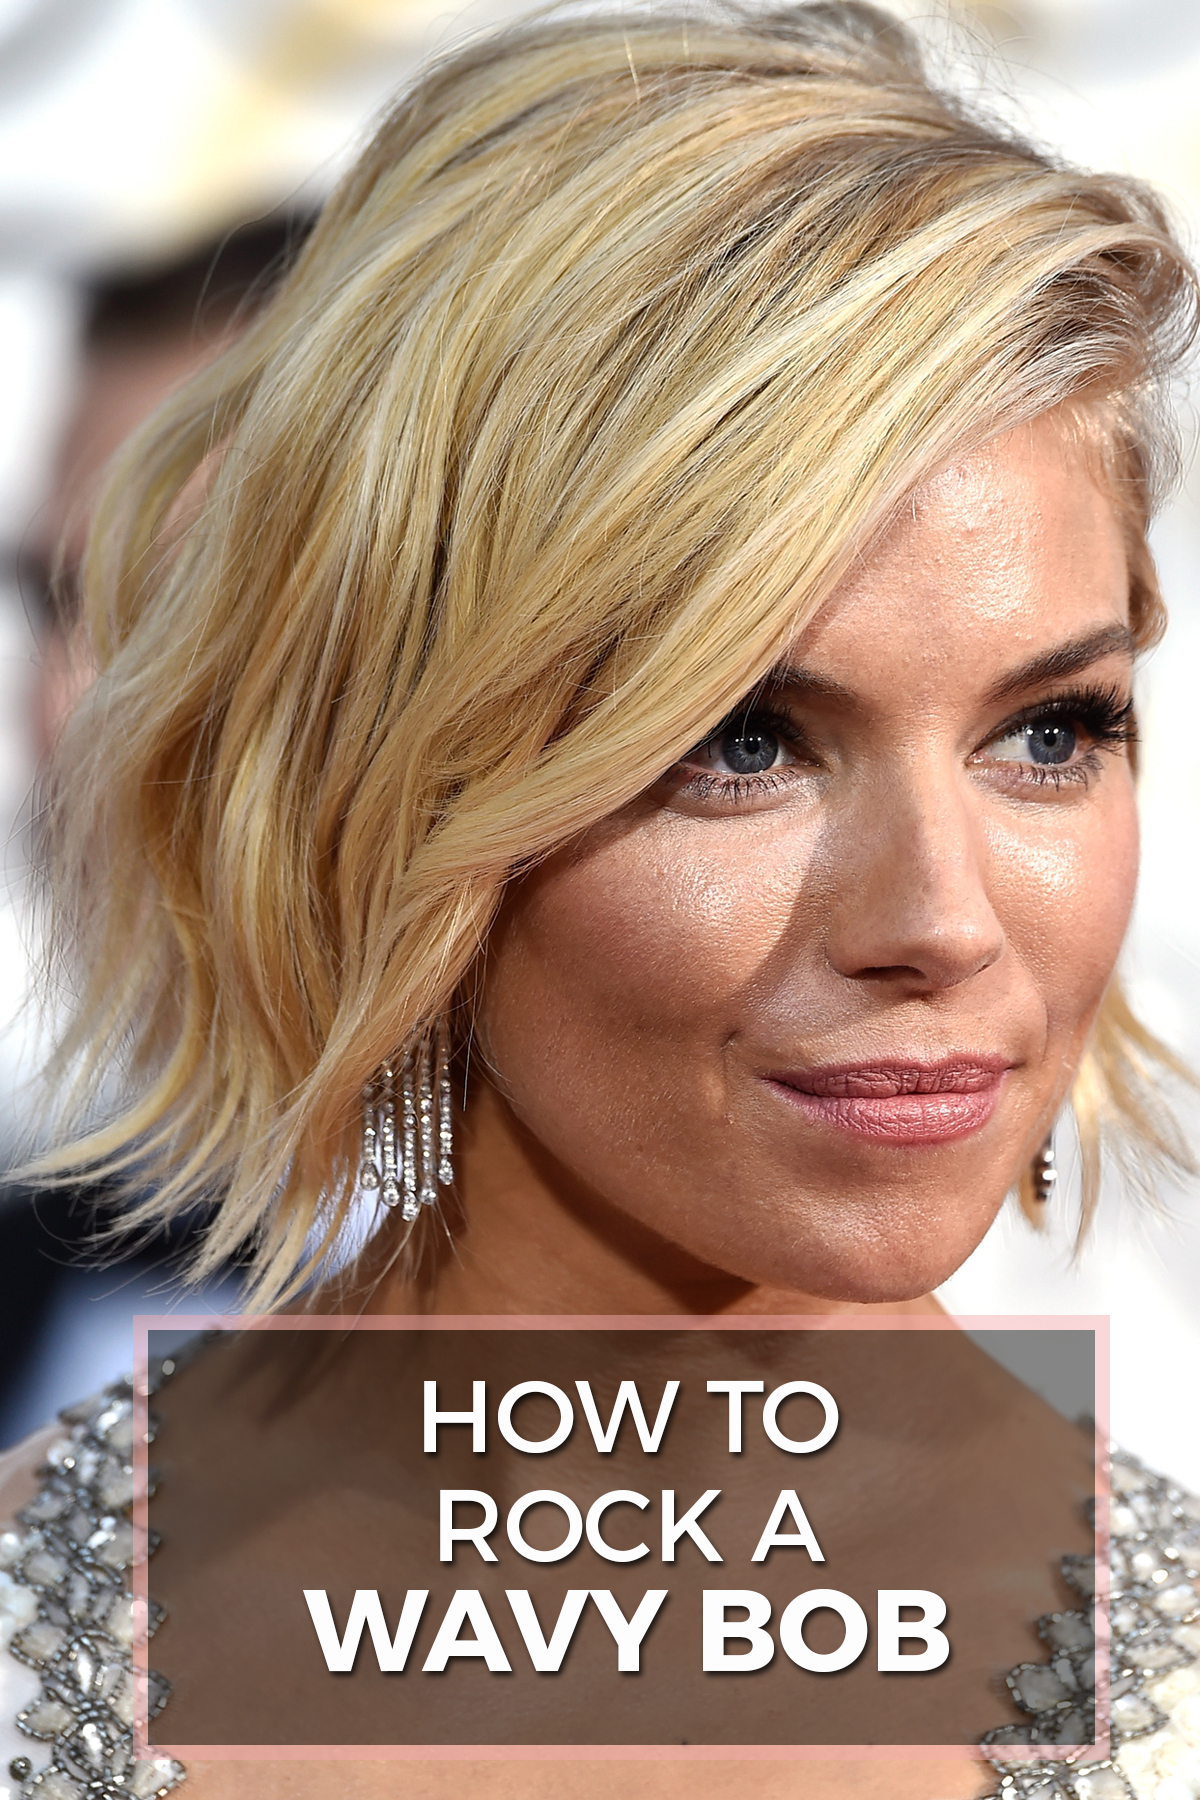 Wavy Bob Hairstyles: How To Rock This Summer\'s \'It\' Cut | HuffPost